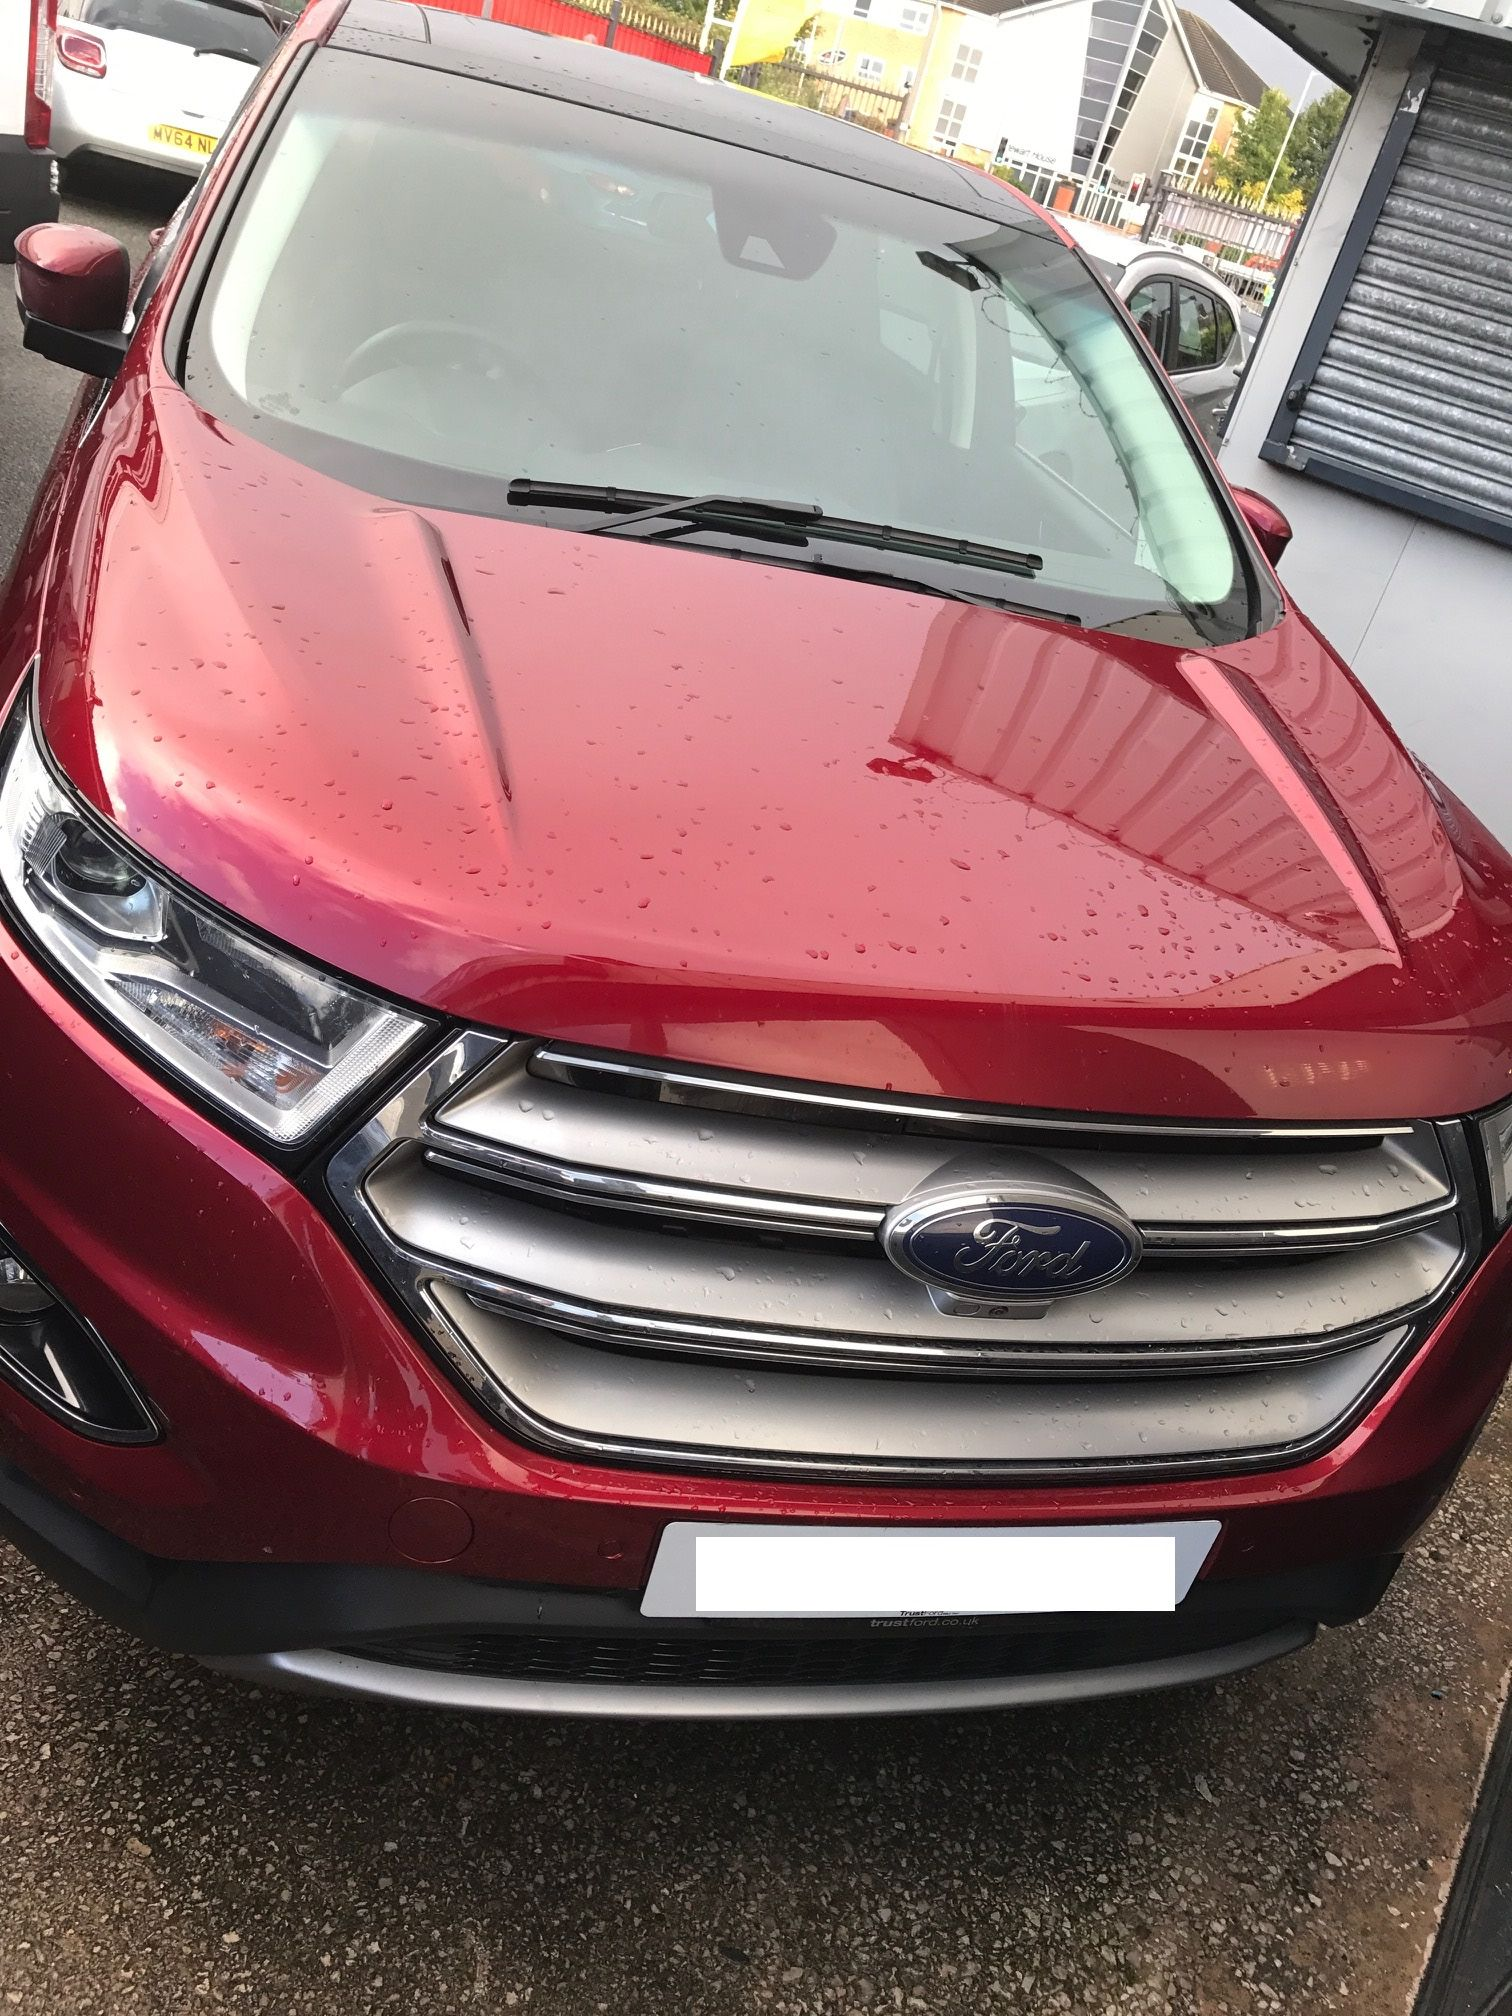 The Ford Edge Leasing Deal One Of The Many Cars And Vans Available To Lease From Www Carlease Uk Com Carssport Carssuv Pinterest Ford Edge Lease